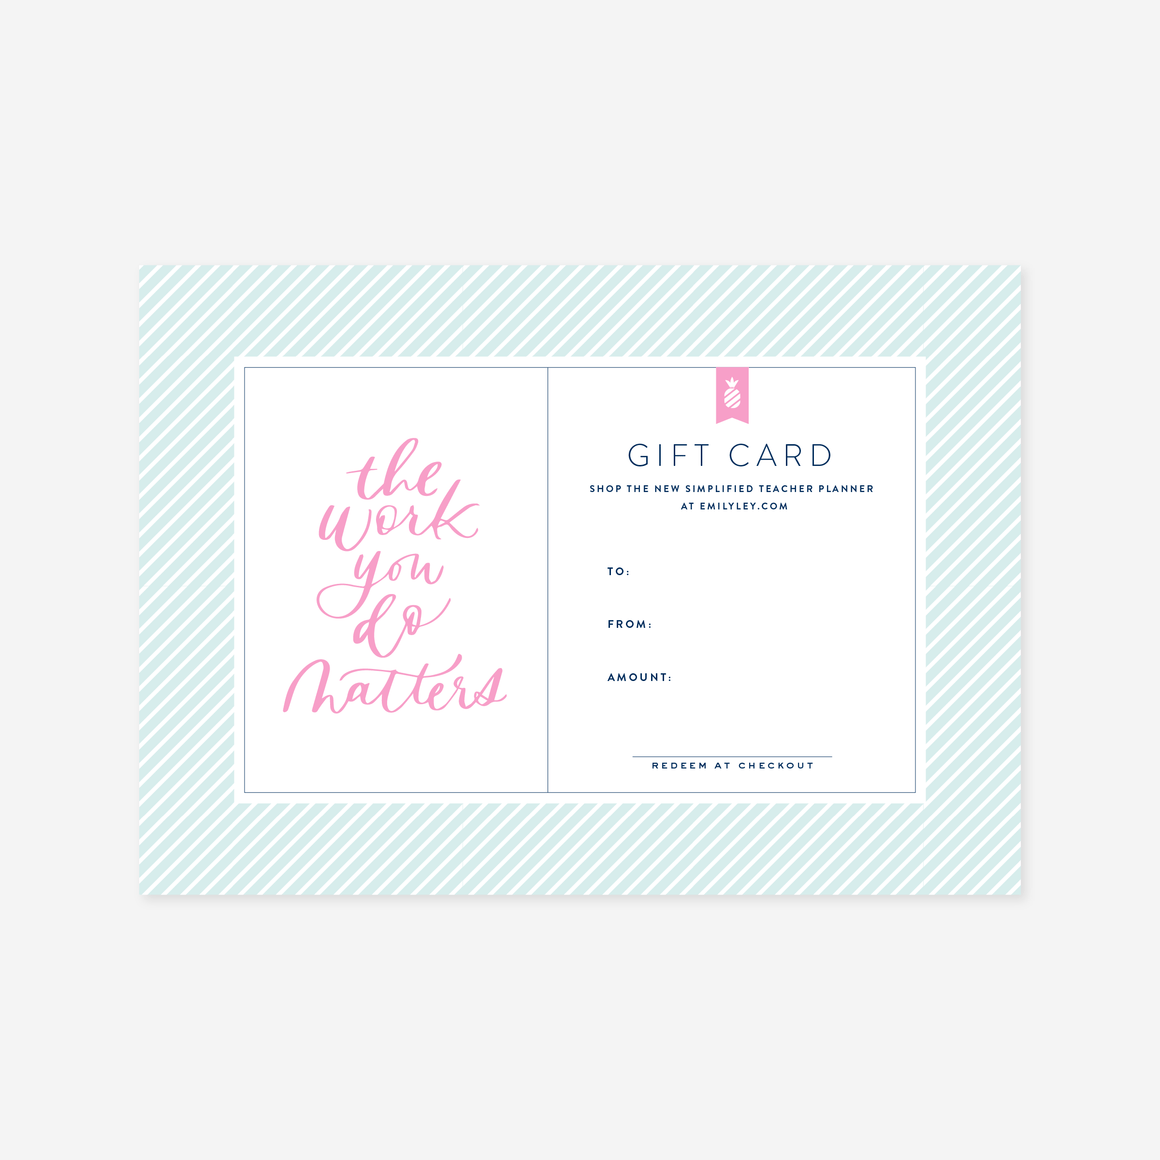 Teacher Planner Digital Gift Card